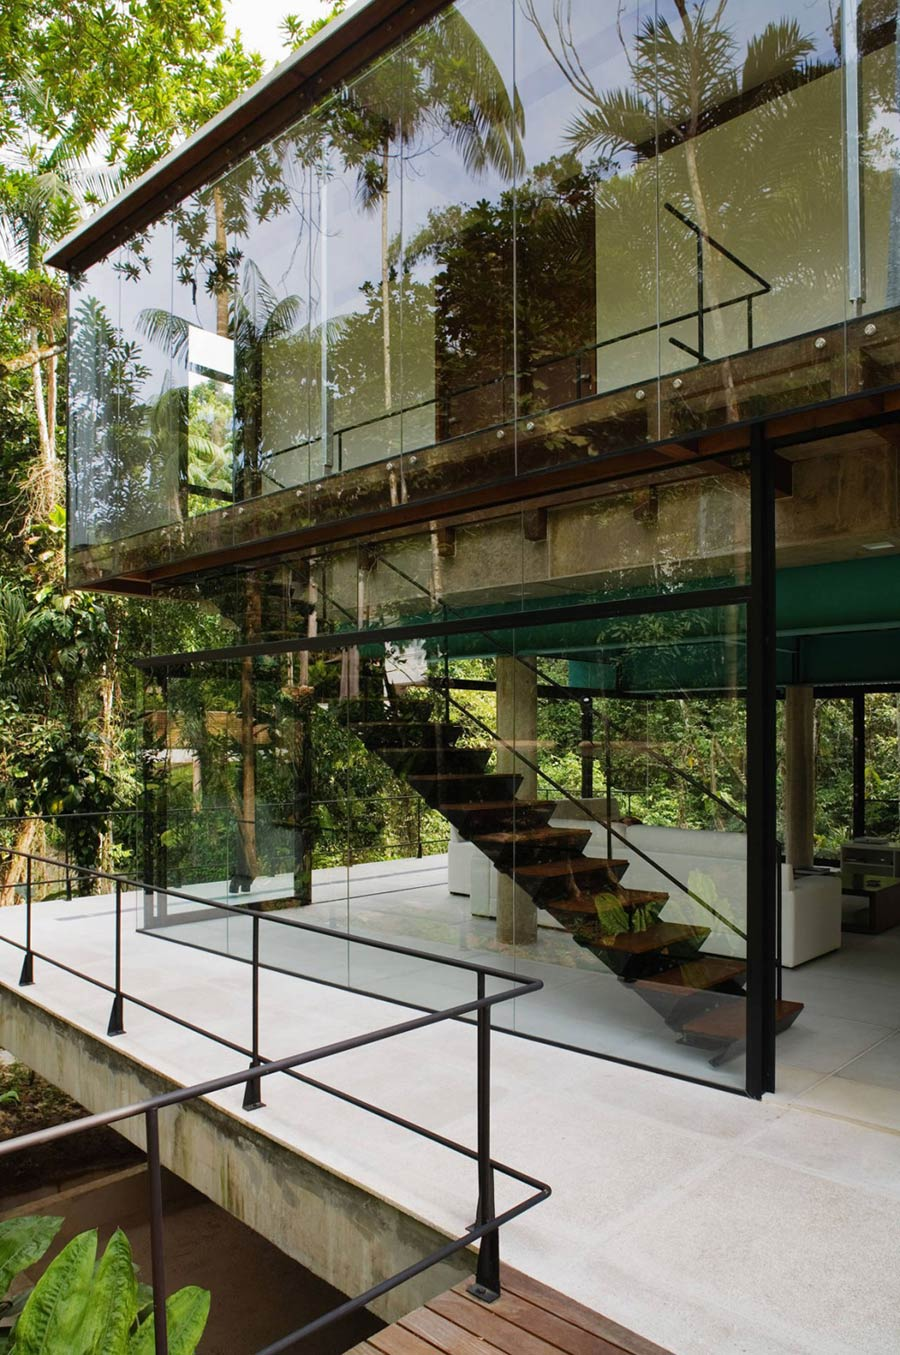 Staircase, House in Iporanga,Brazil by Nitsche Arquitetos Associados